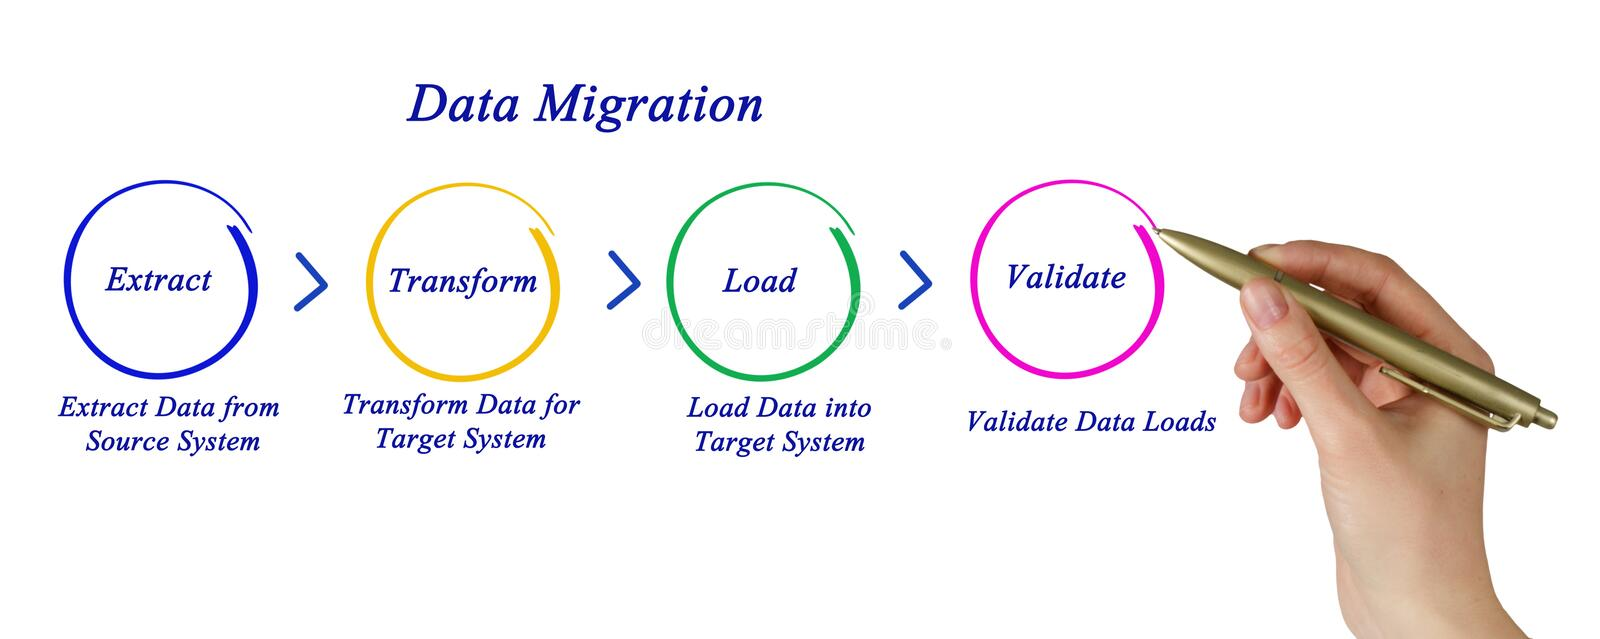 Data migration. Important steps in Data migration royalty free stock photo